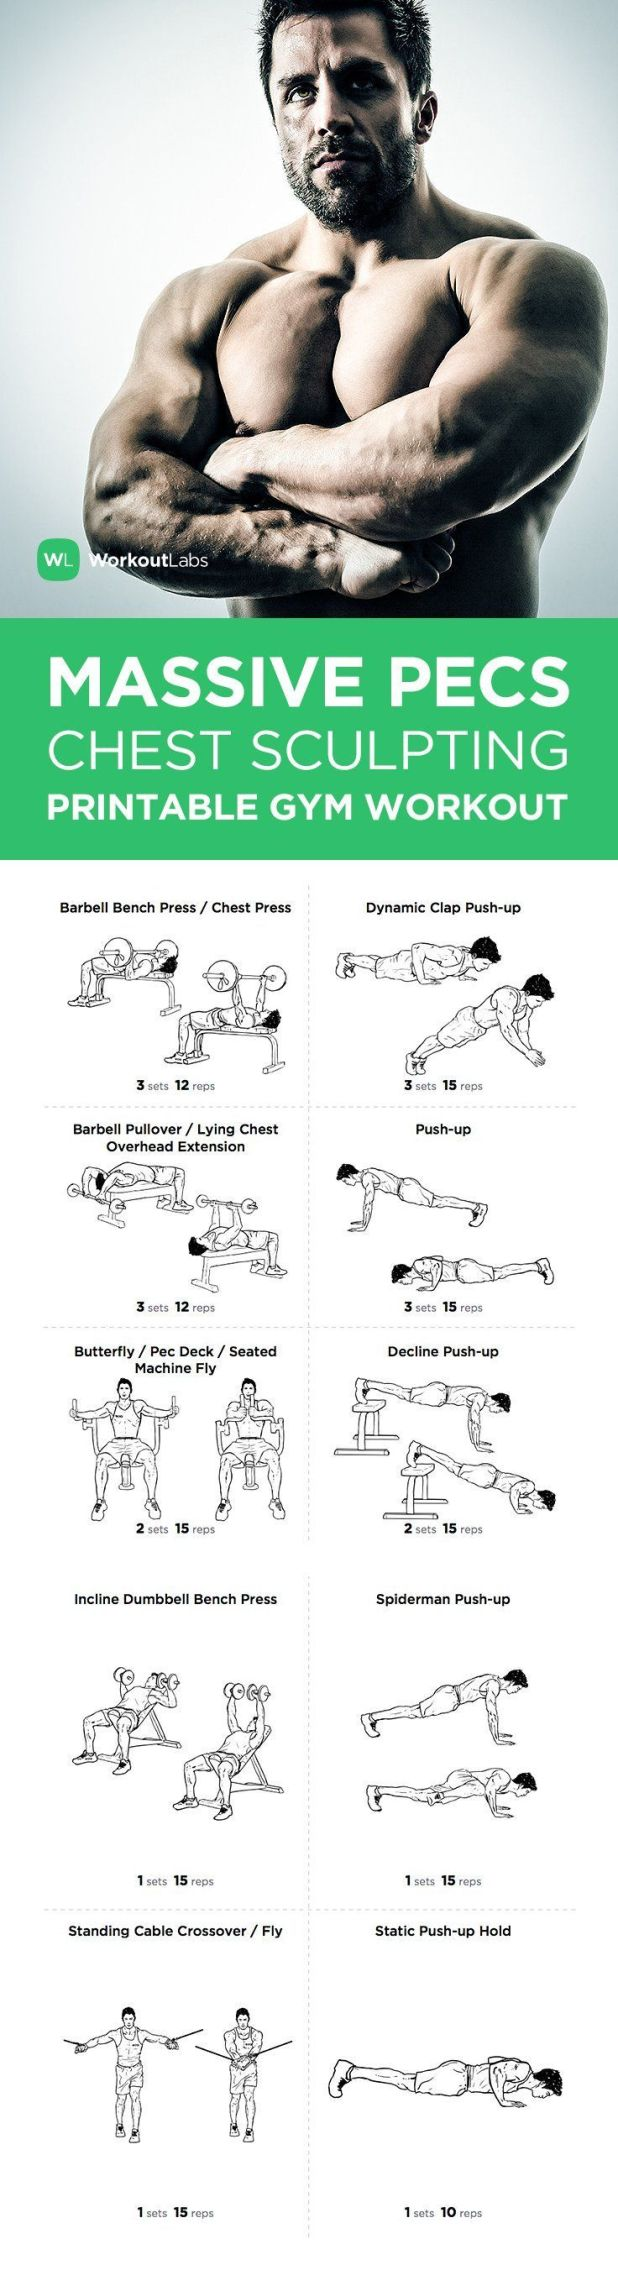 Gym Workout Schedule For Men Pdf Yelom Myphonecompany Co